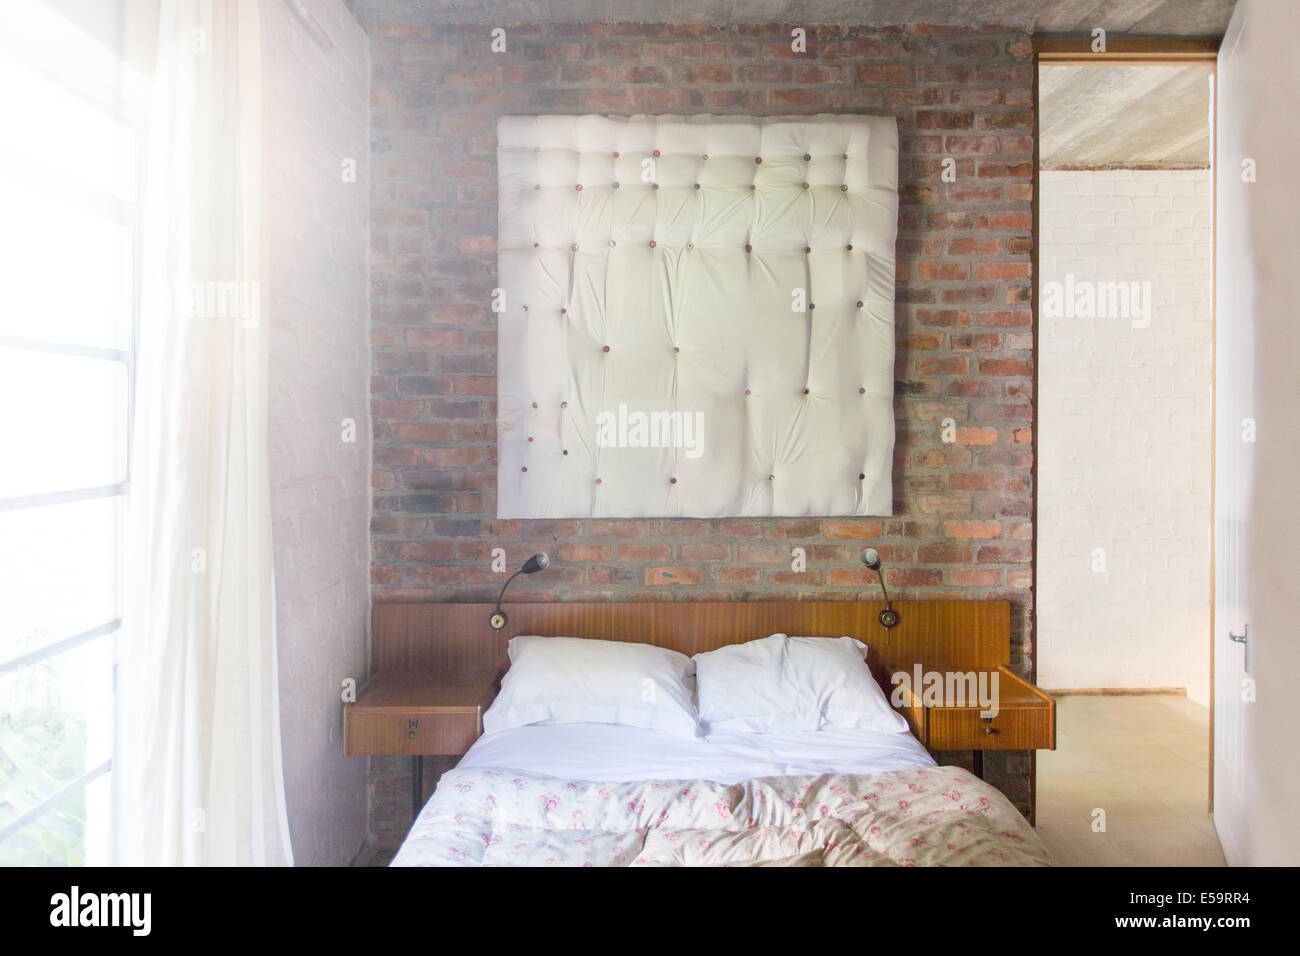 Wall hanging in modern bedroom - Stock Image